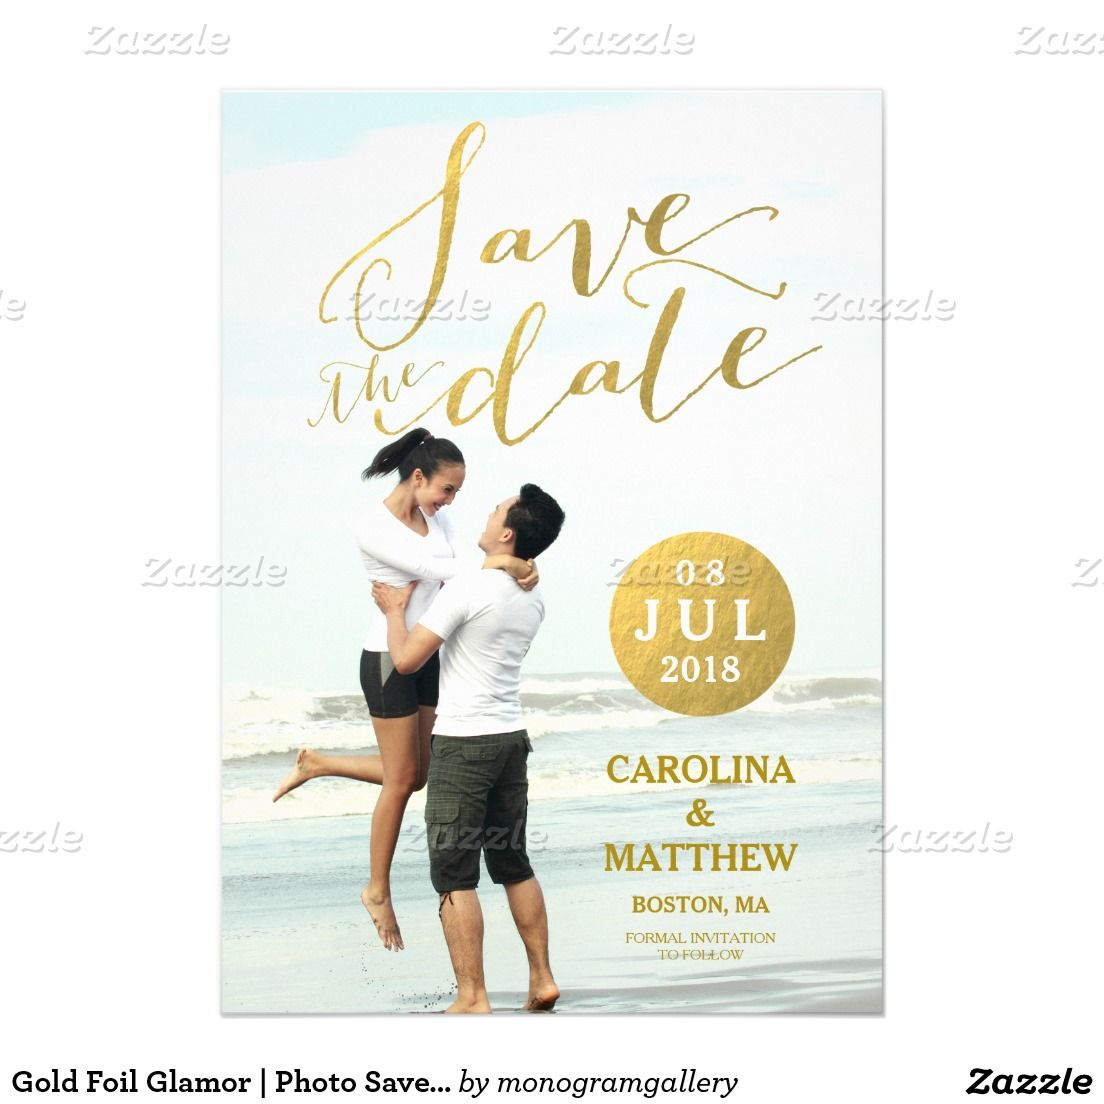 Gold Foil Glamor   Photo Save the Date Card